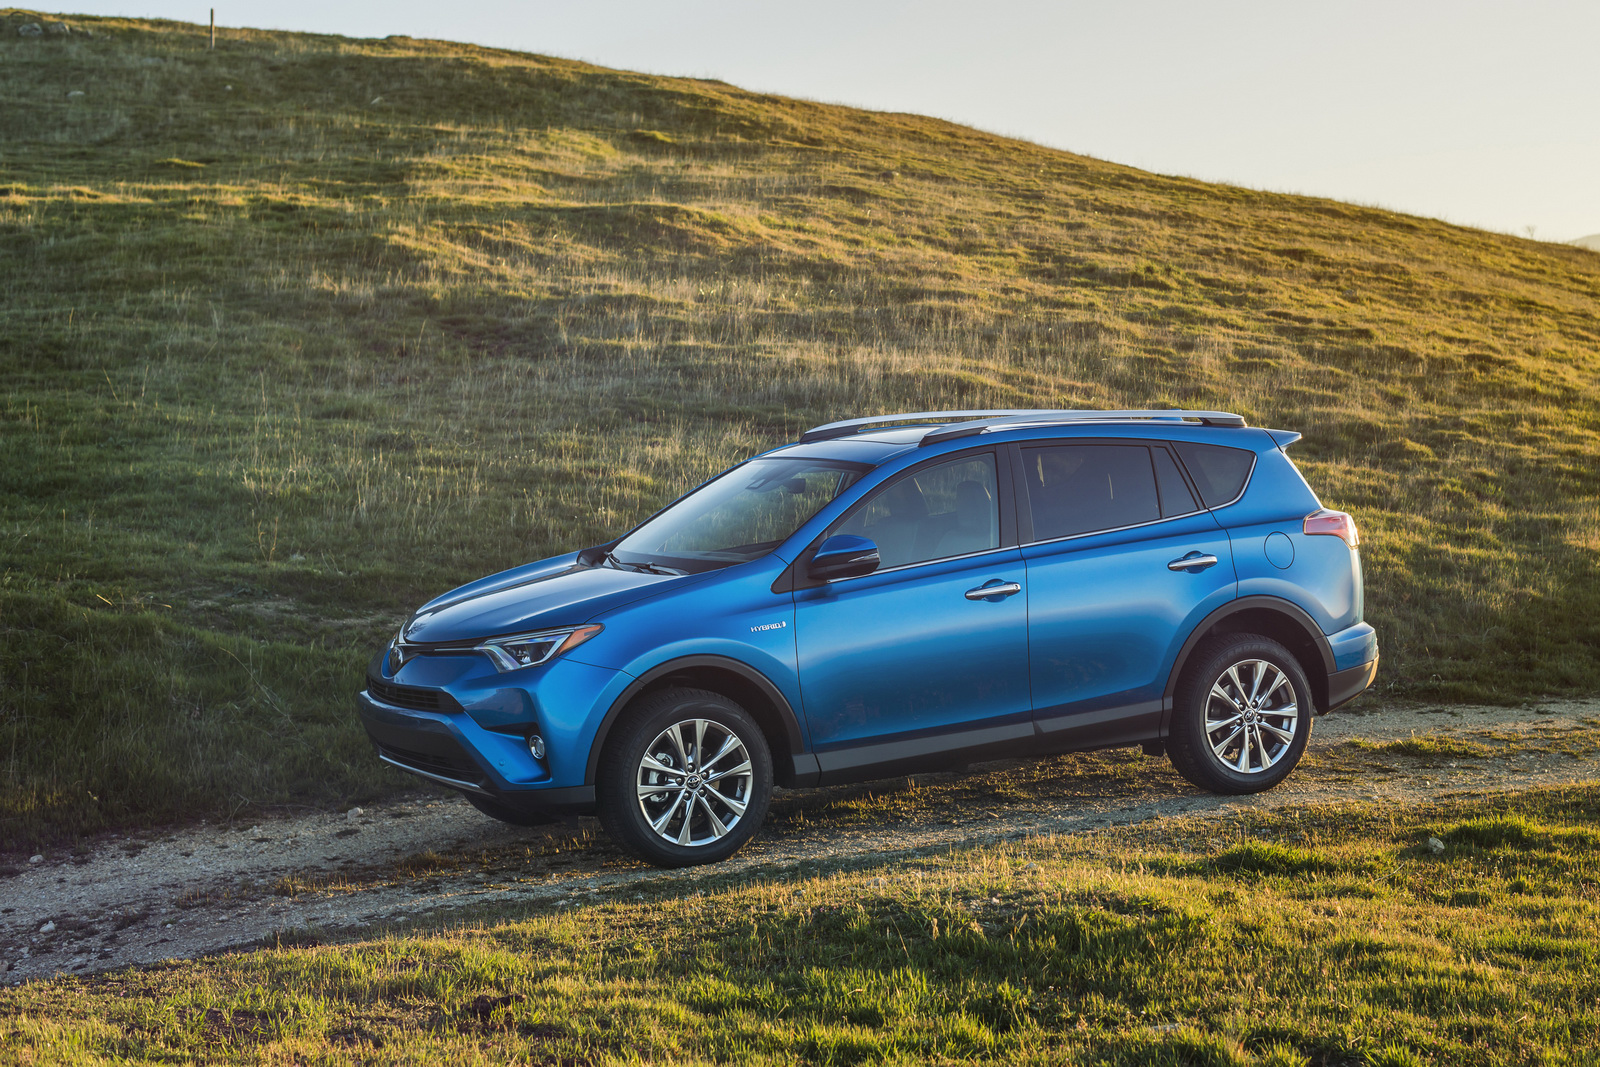 2016 toyota rav4 hybrid unveiled with more power higher mpg autoevolution. Black Bedroom Furniture Sets. Home Design Ideas